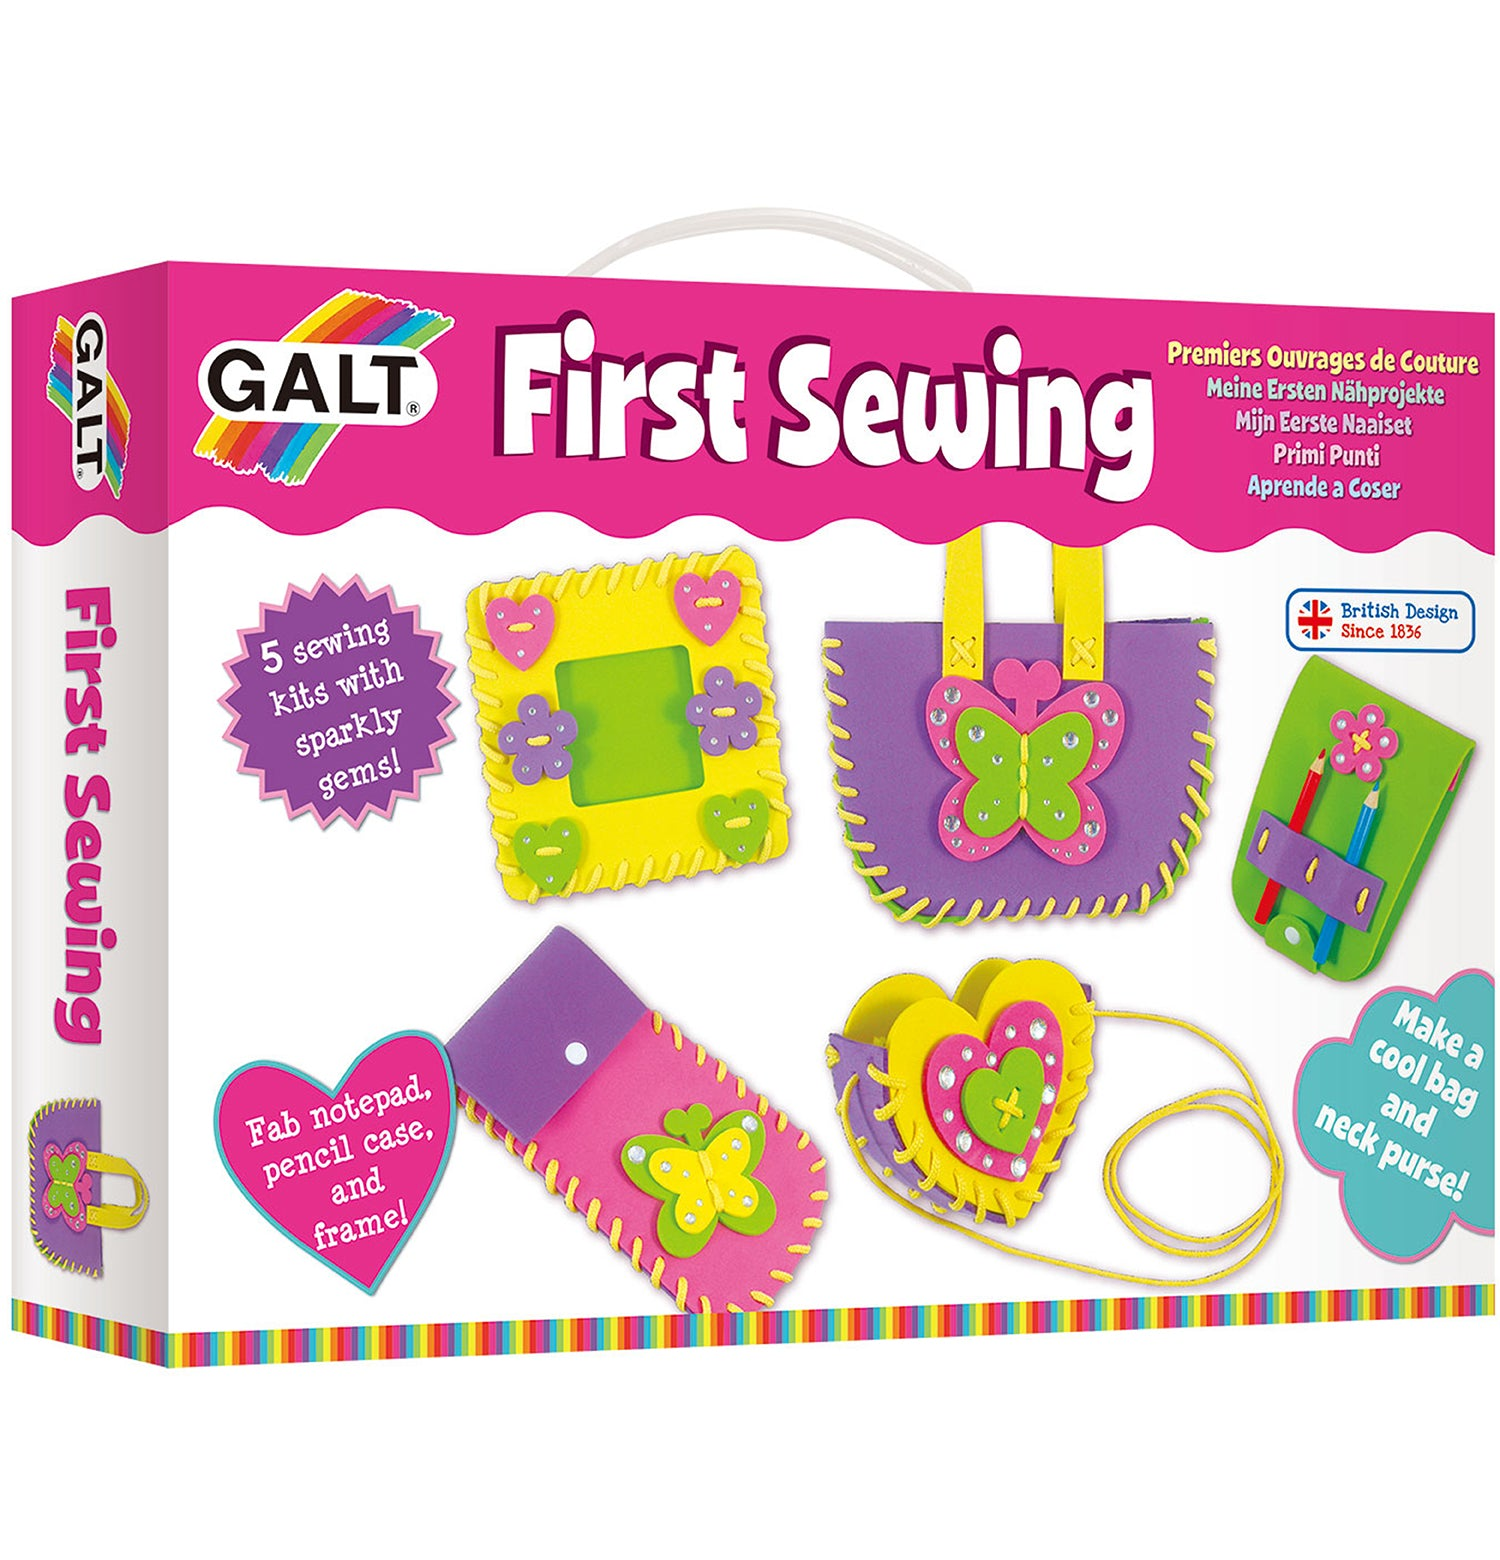 First Sewing - Galt